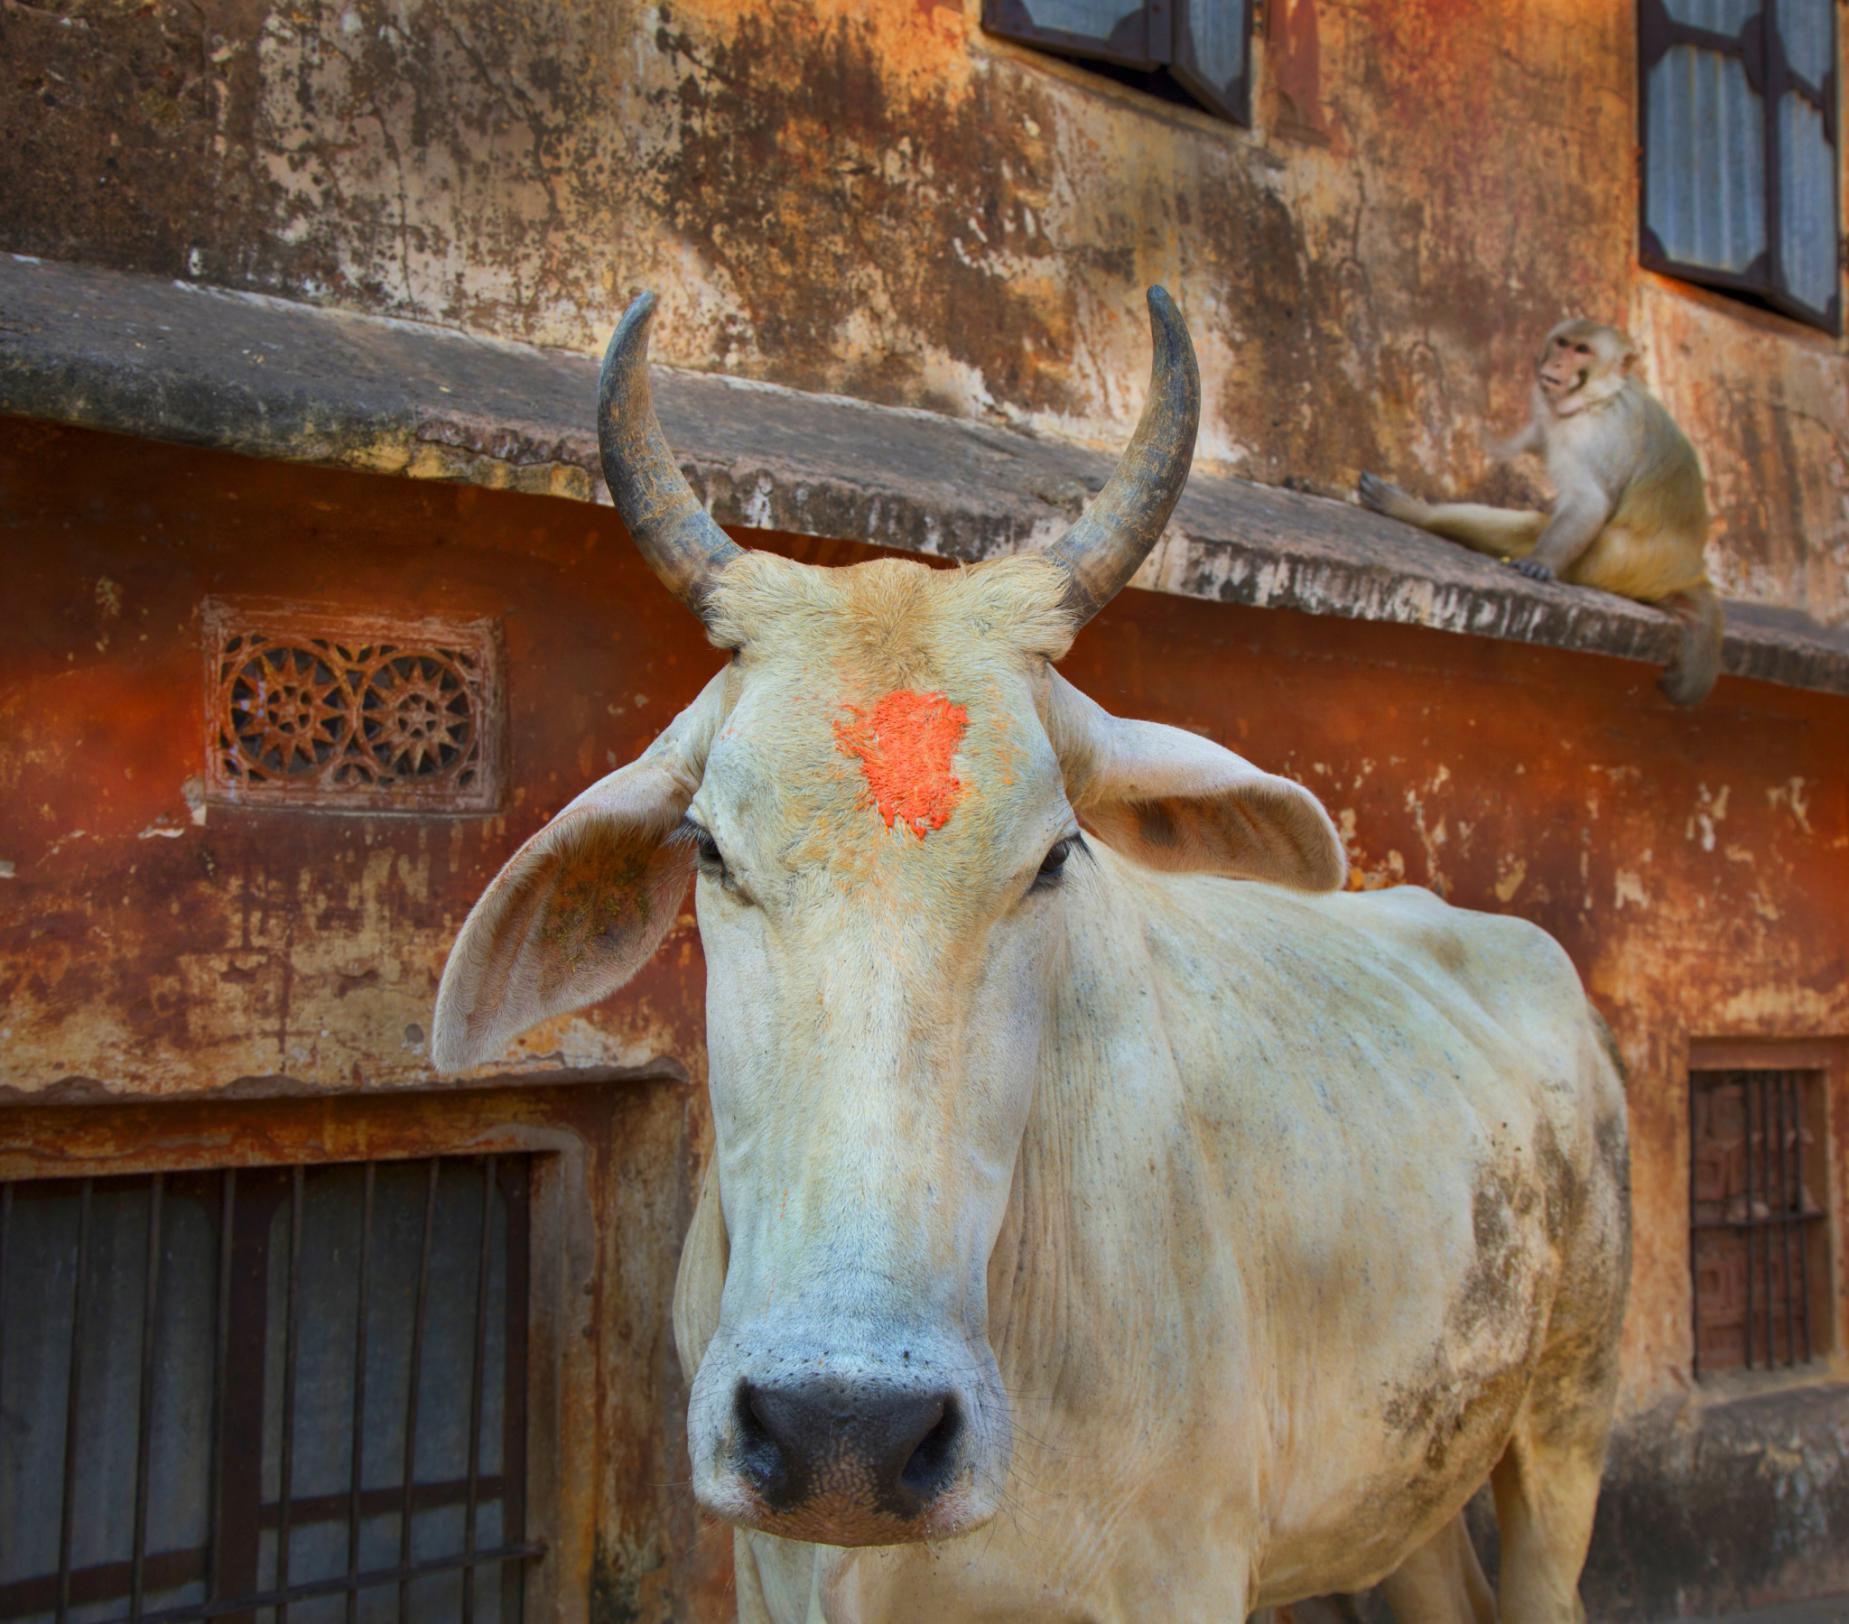 humorous essay on cow Some students lack confidence when it comes to writing a how-to essay but this list will inspire you to find a topic that you you know well.